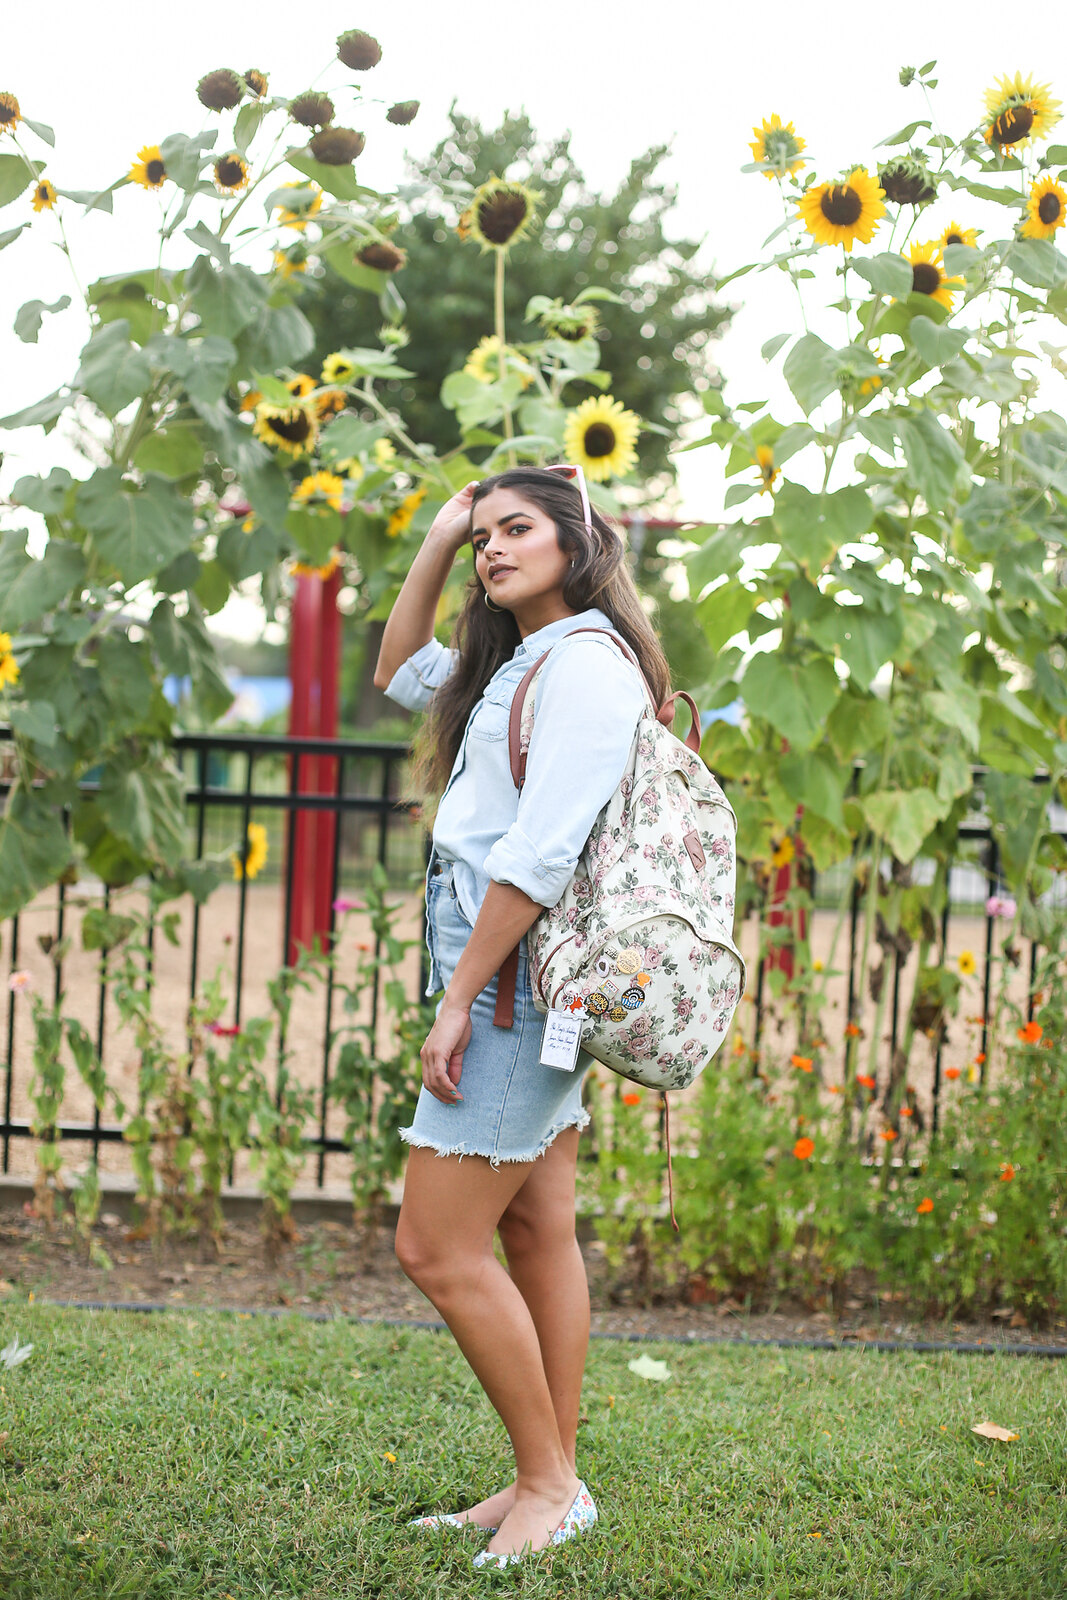 Priya the Blog, Nashville fashion blog, Nashville fashion blogger, Nashville style blog, Nashville style blogger, chambray Summer outfit, Sunflower tuxedo, Canadian tuxedo for Summer, Sunflower outfit shoot, denim on denim for Summer, floral backpack